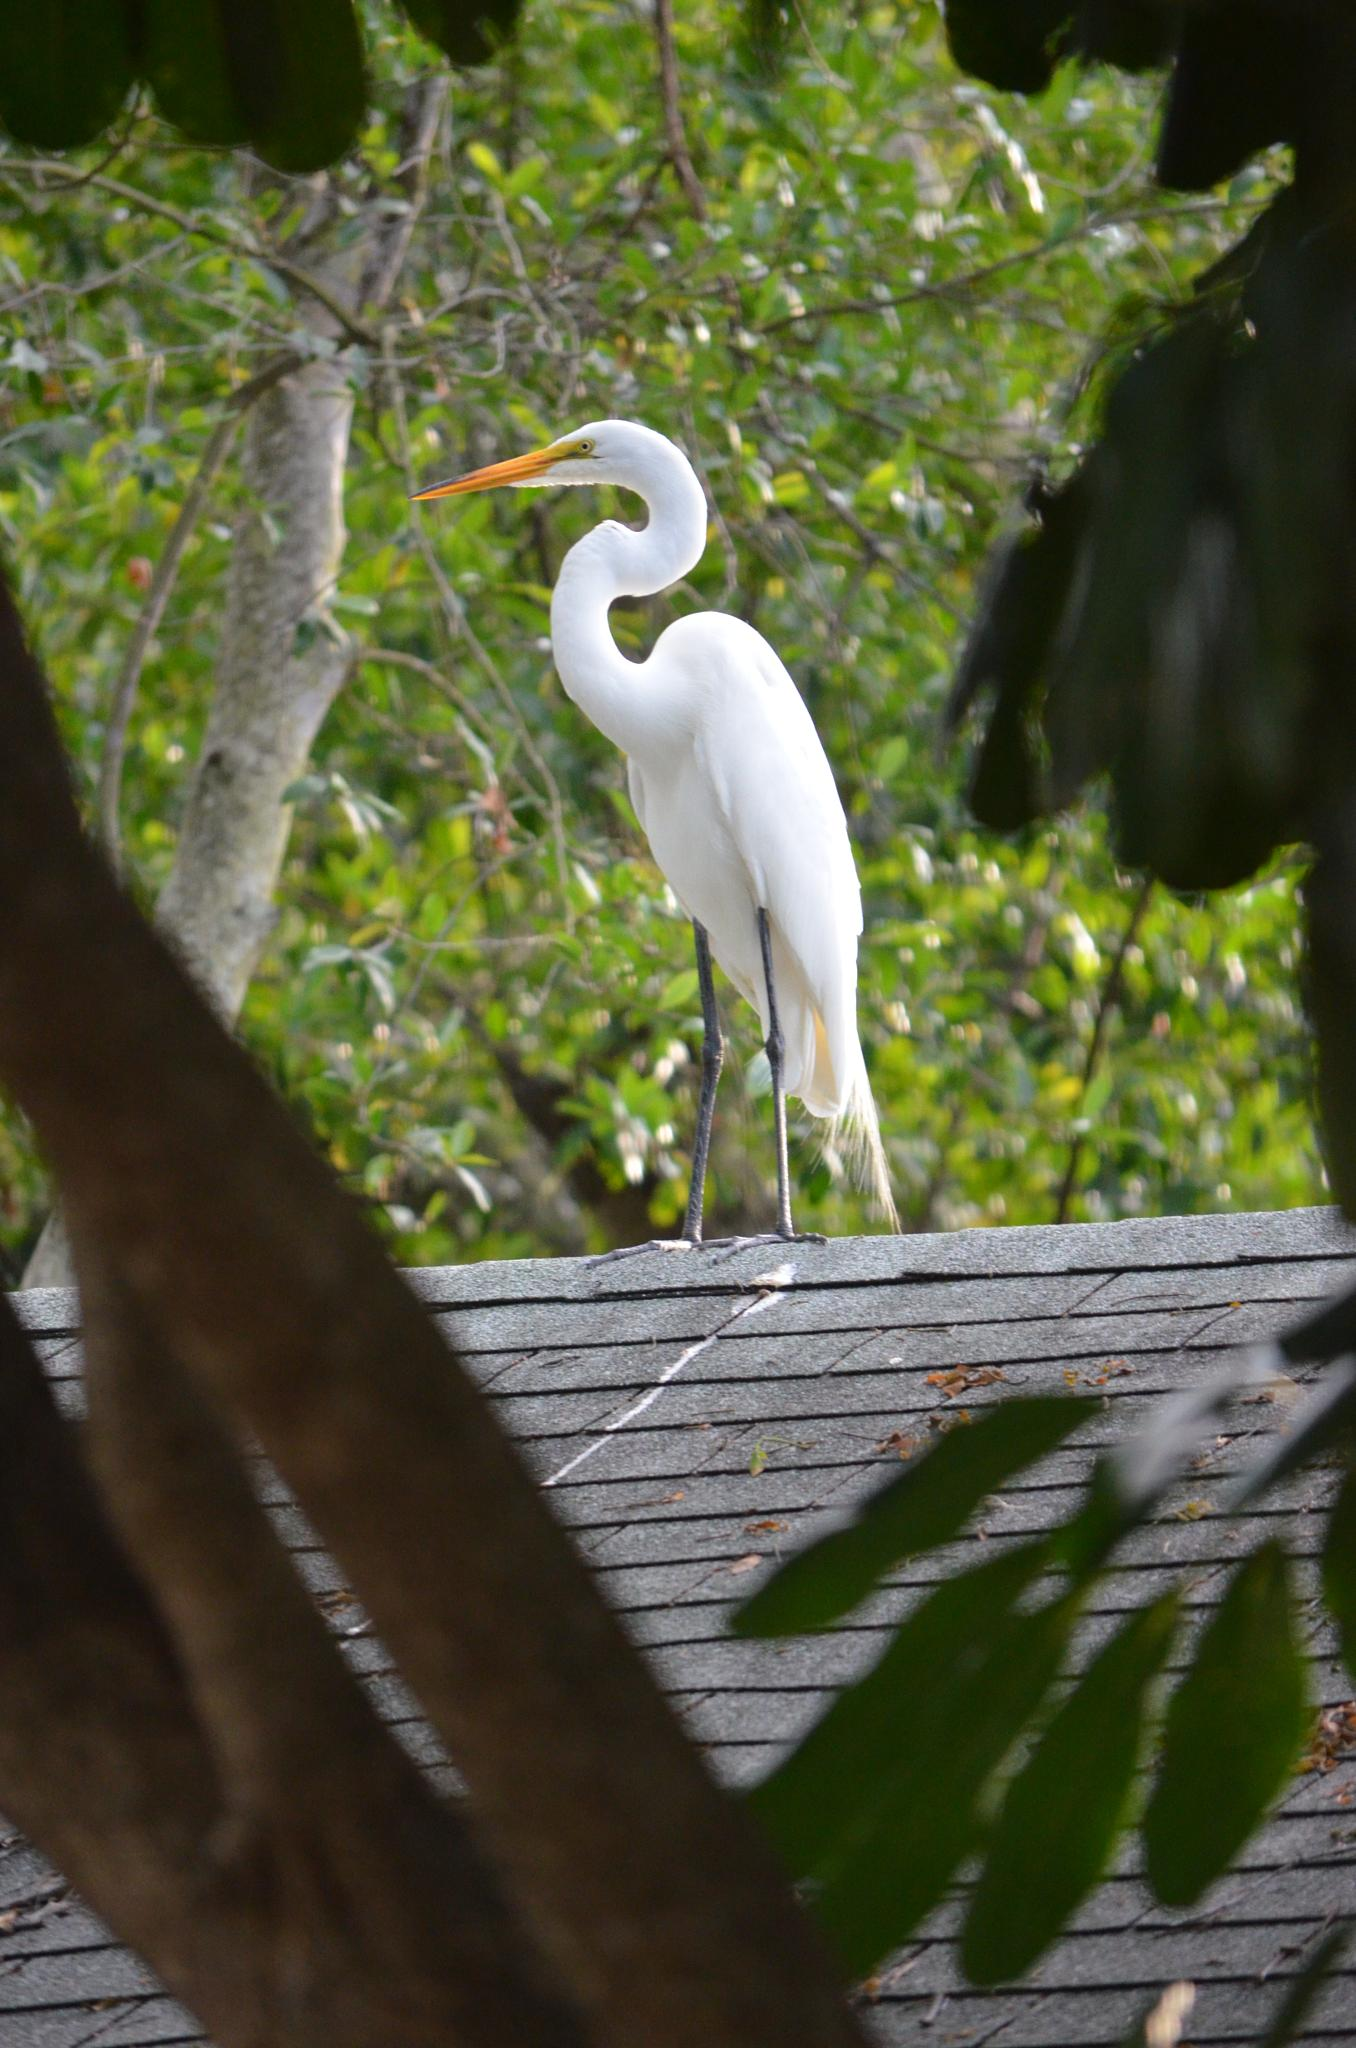 Great Egret on the roof by Sophia von Wrangell